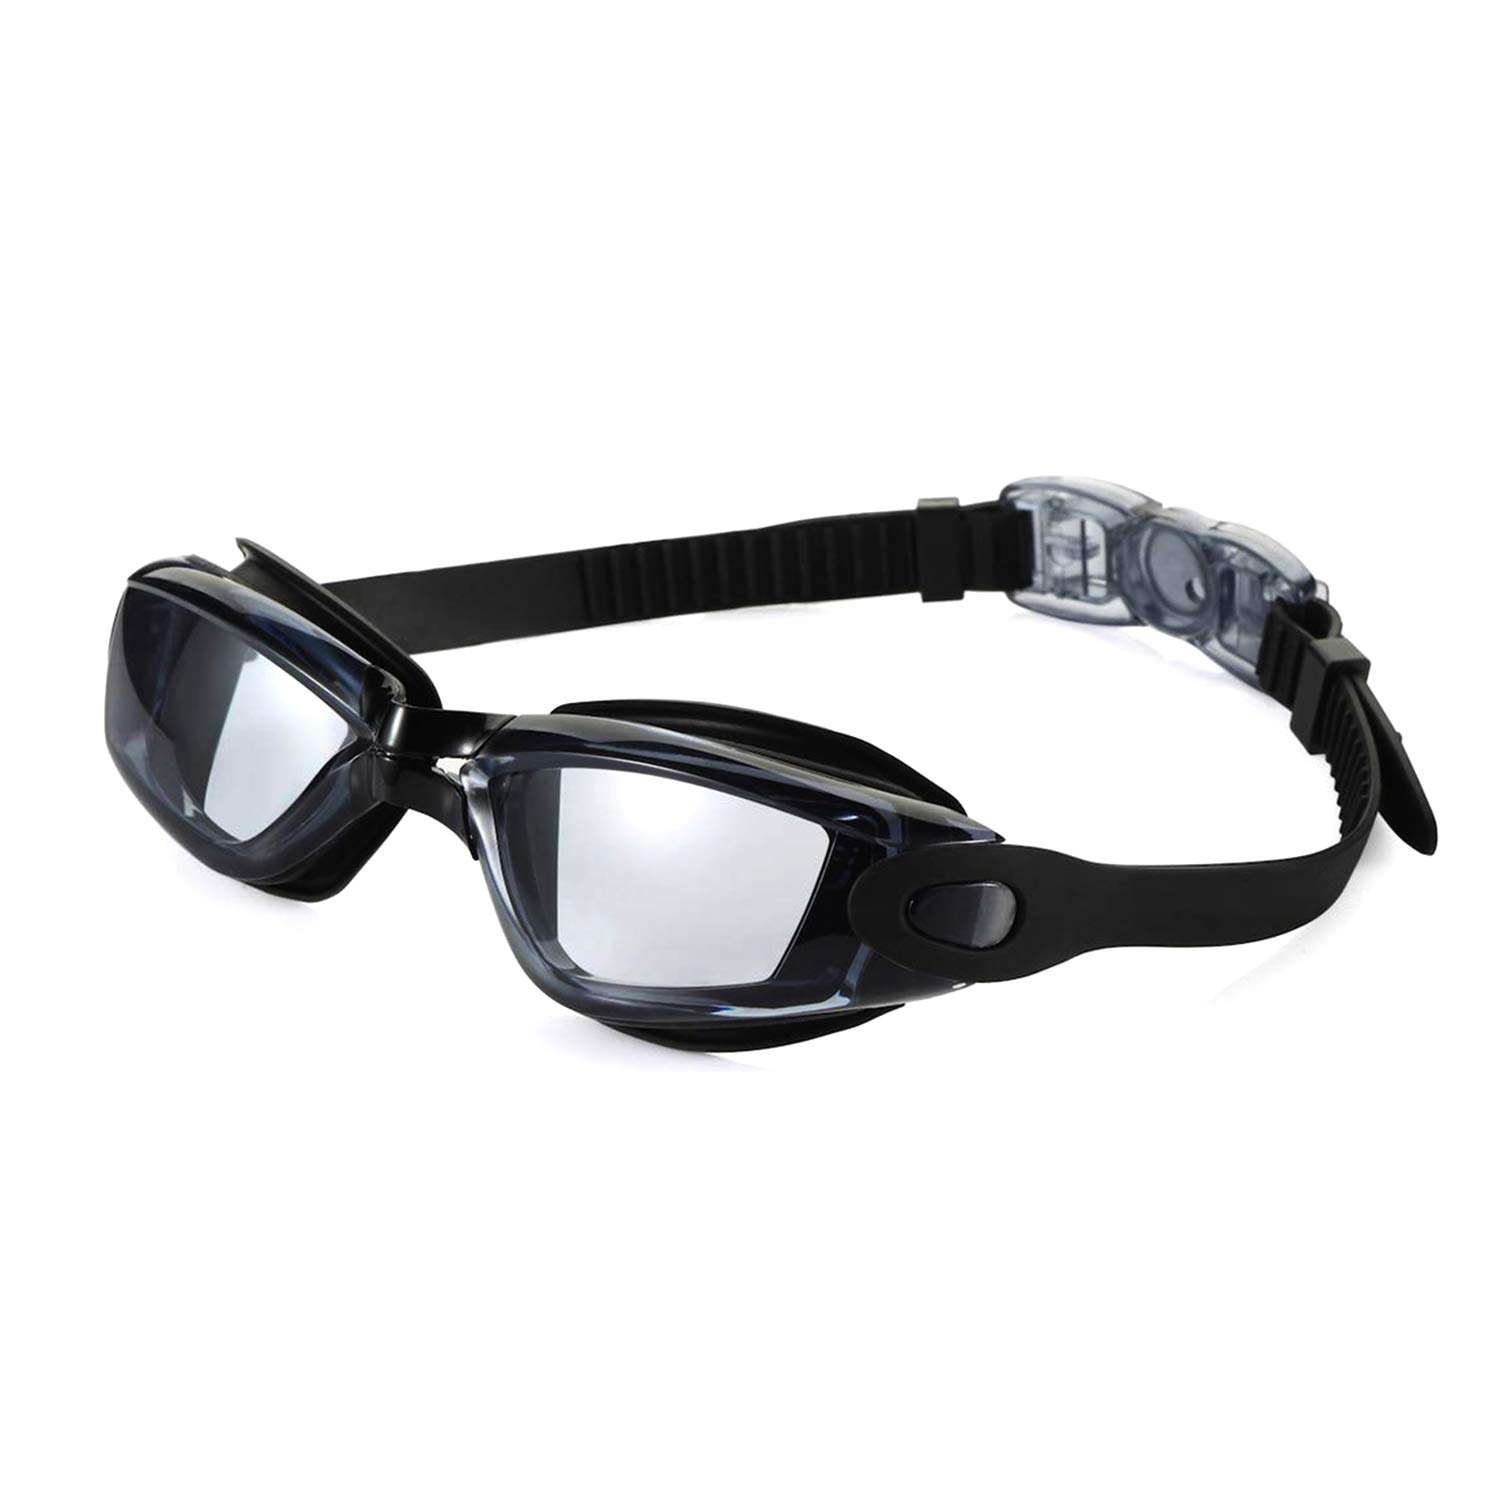 Swimming Goggles Adult, Swim Goggles Anti Fog No Leaking UV Protection with Wide View for Men Women